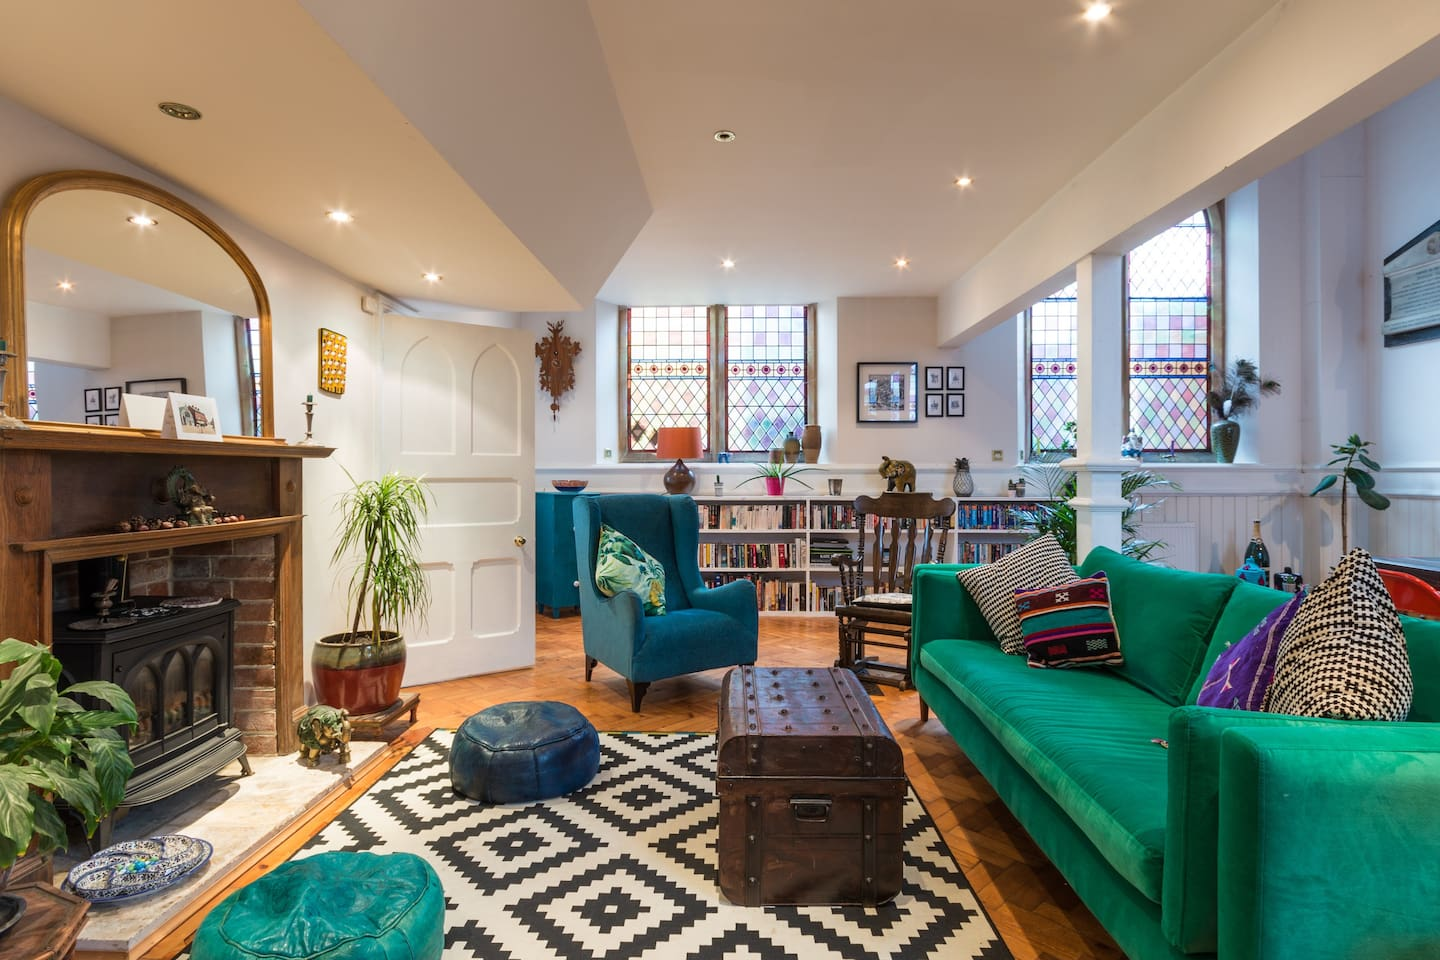 5 stunning double bedrooms, TV room, huge kitchen with all mod cons and chapel sitting room with original features including 10ft stained glass windows